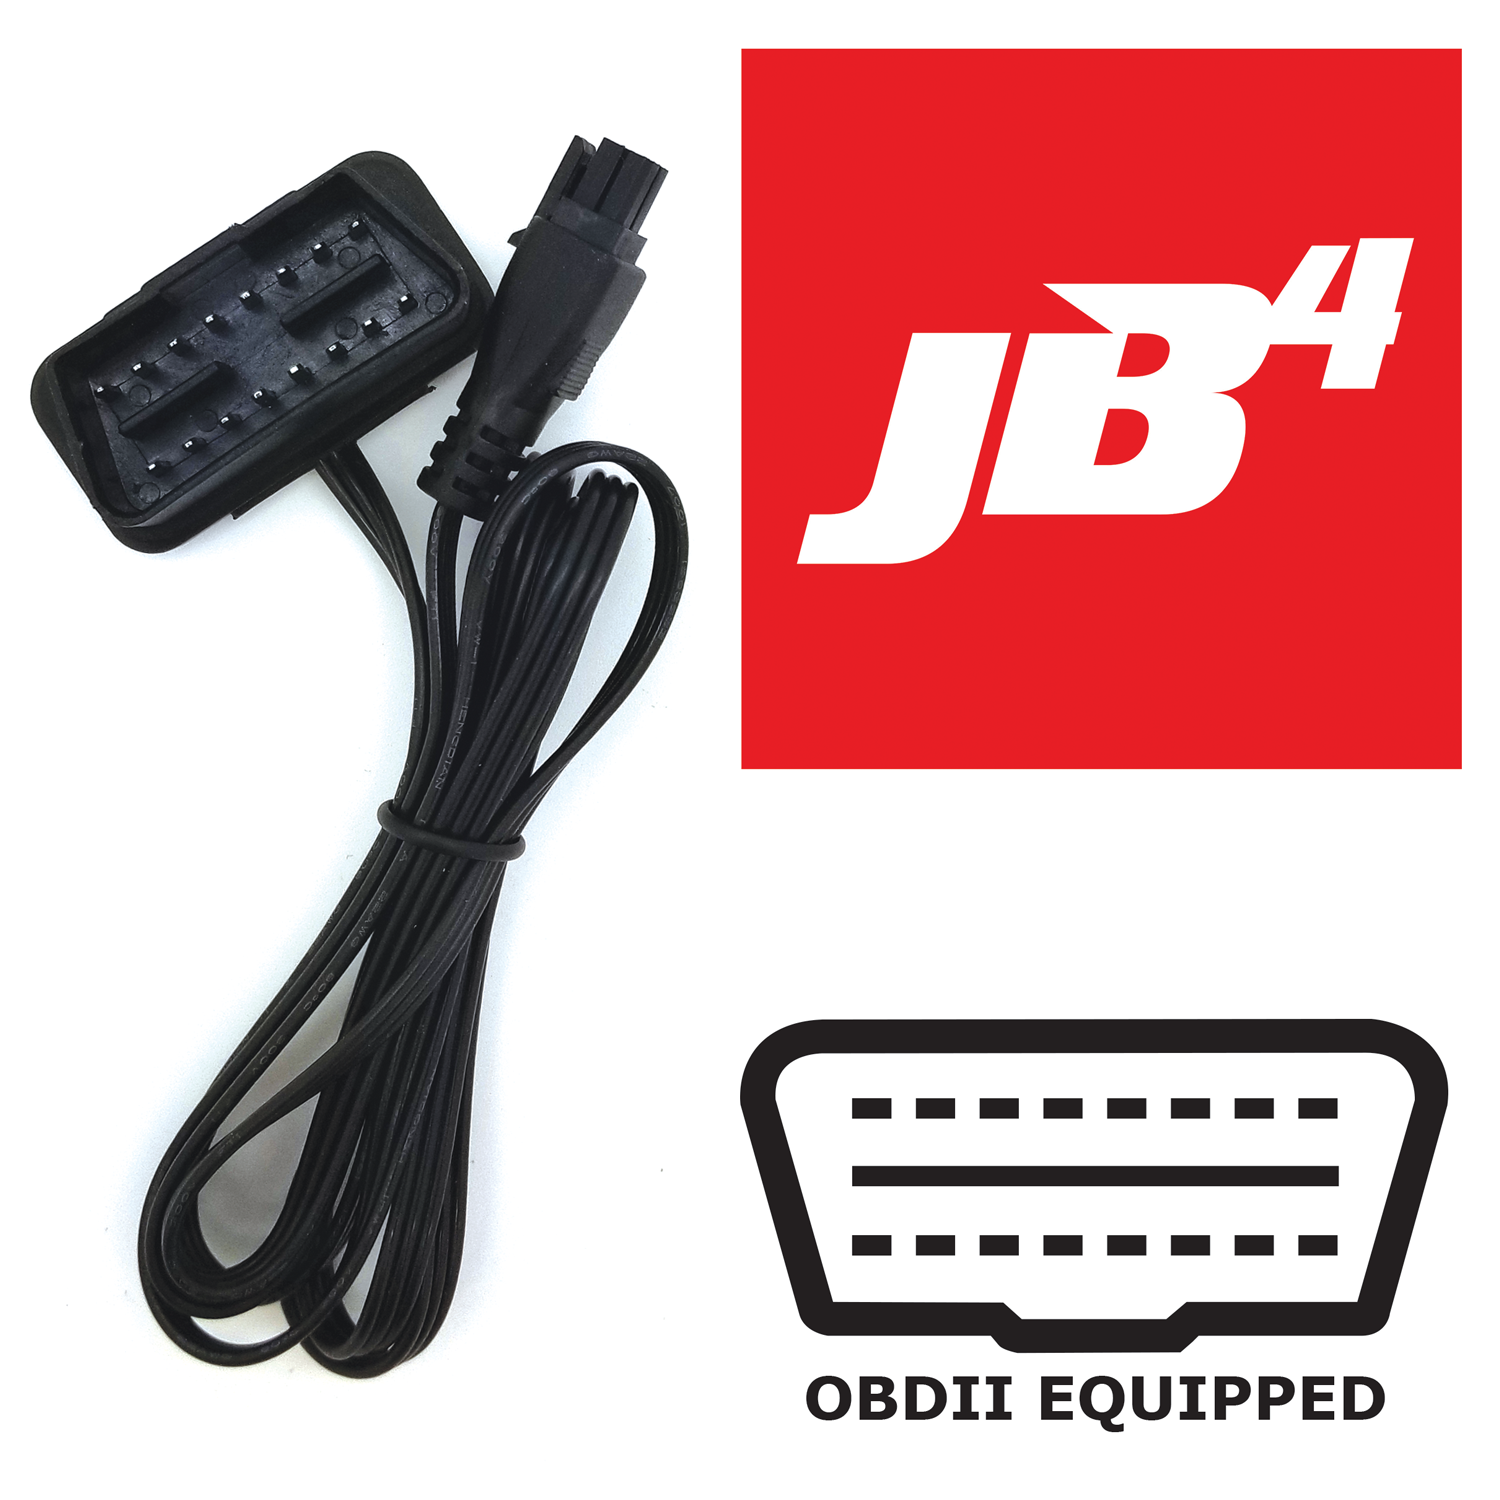 JB4 Tuner for 2015+ BMW S55 M2C/M3/M4 Engines - BurgerTuning